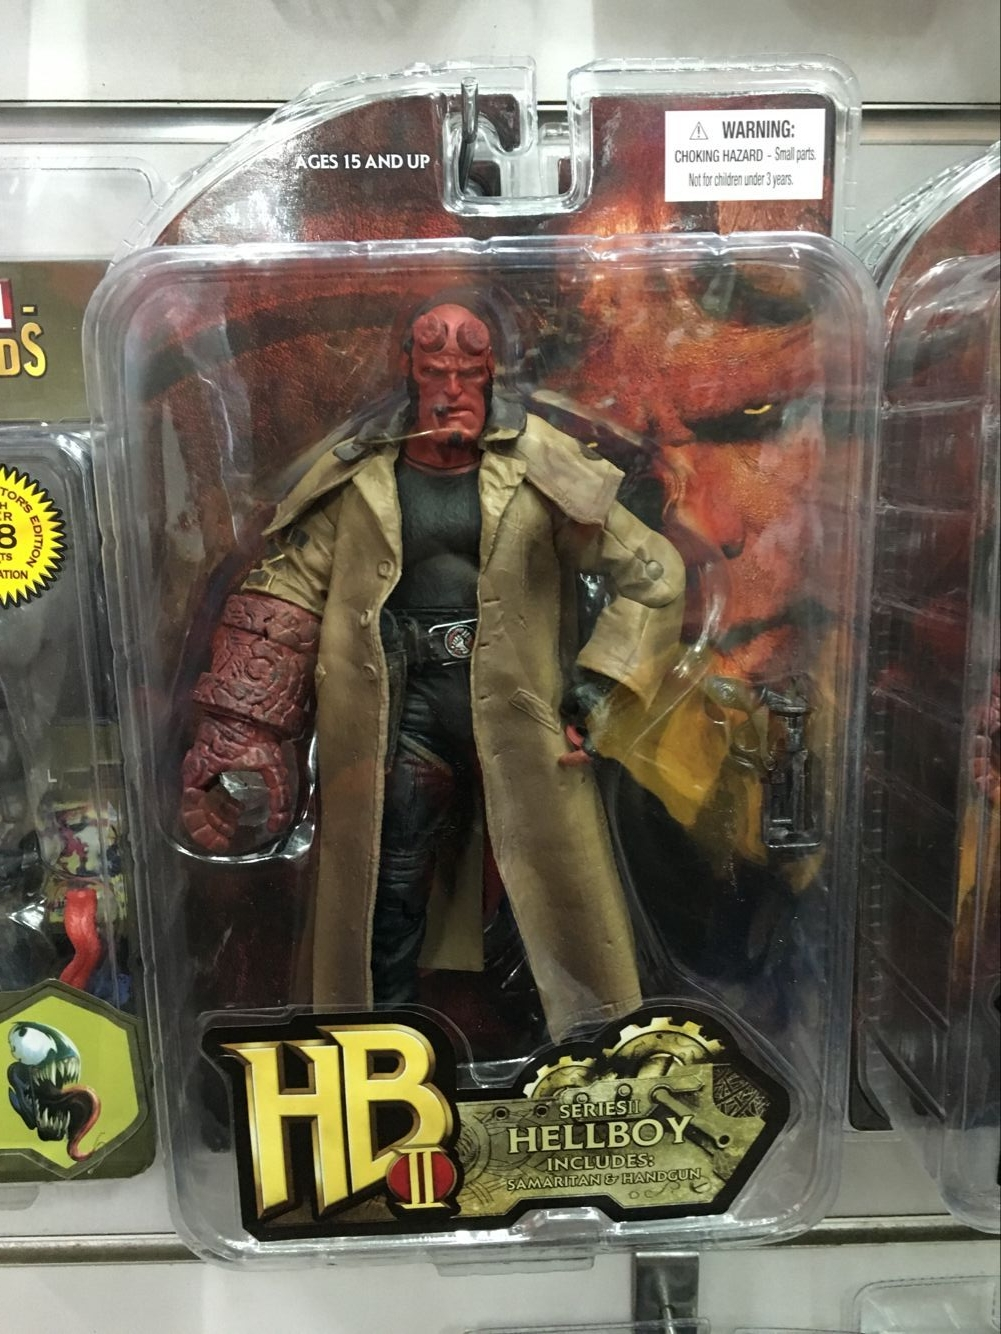 MEZCO Hellboy 2 Styles PVC Action Figure Collectible Model Toy 7 18cm KT3641 20cm 7 hellboy action figure wounded hellboy includes samaritan handgun cool hb collectible model toy